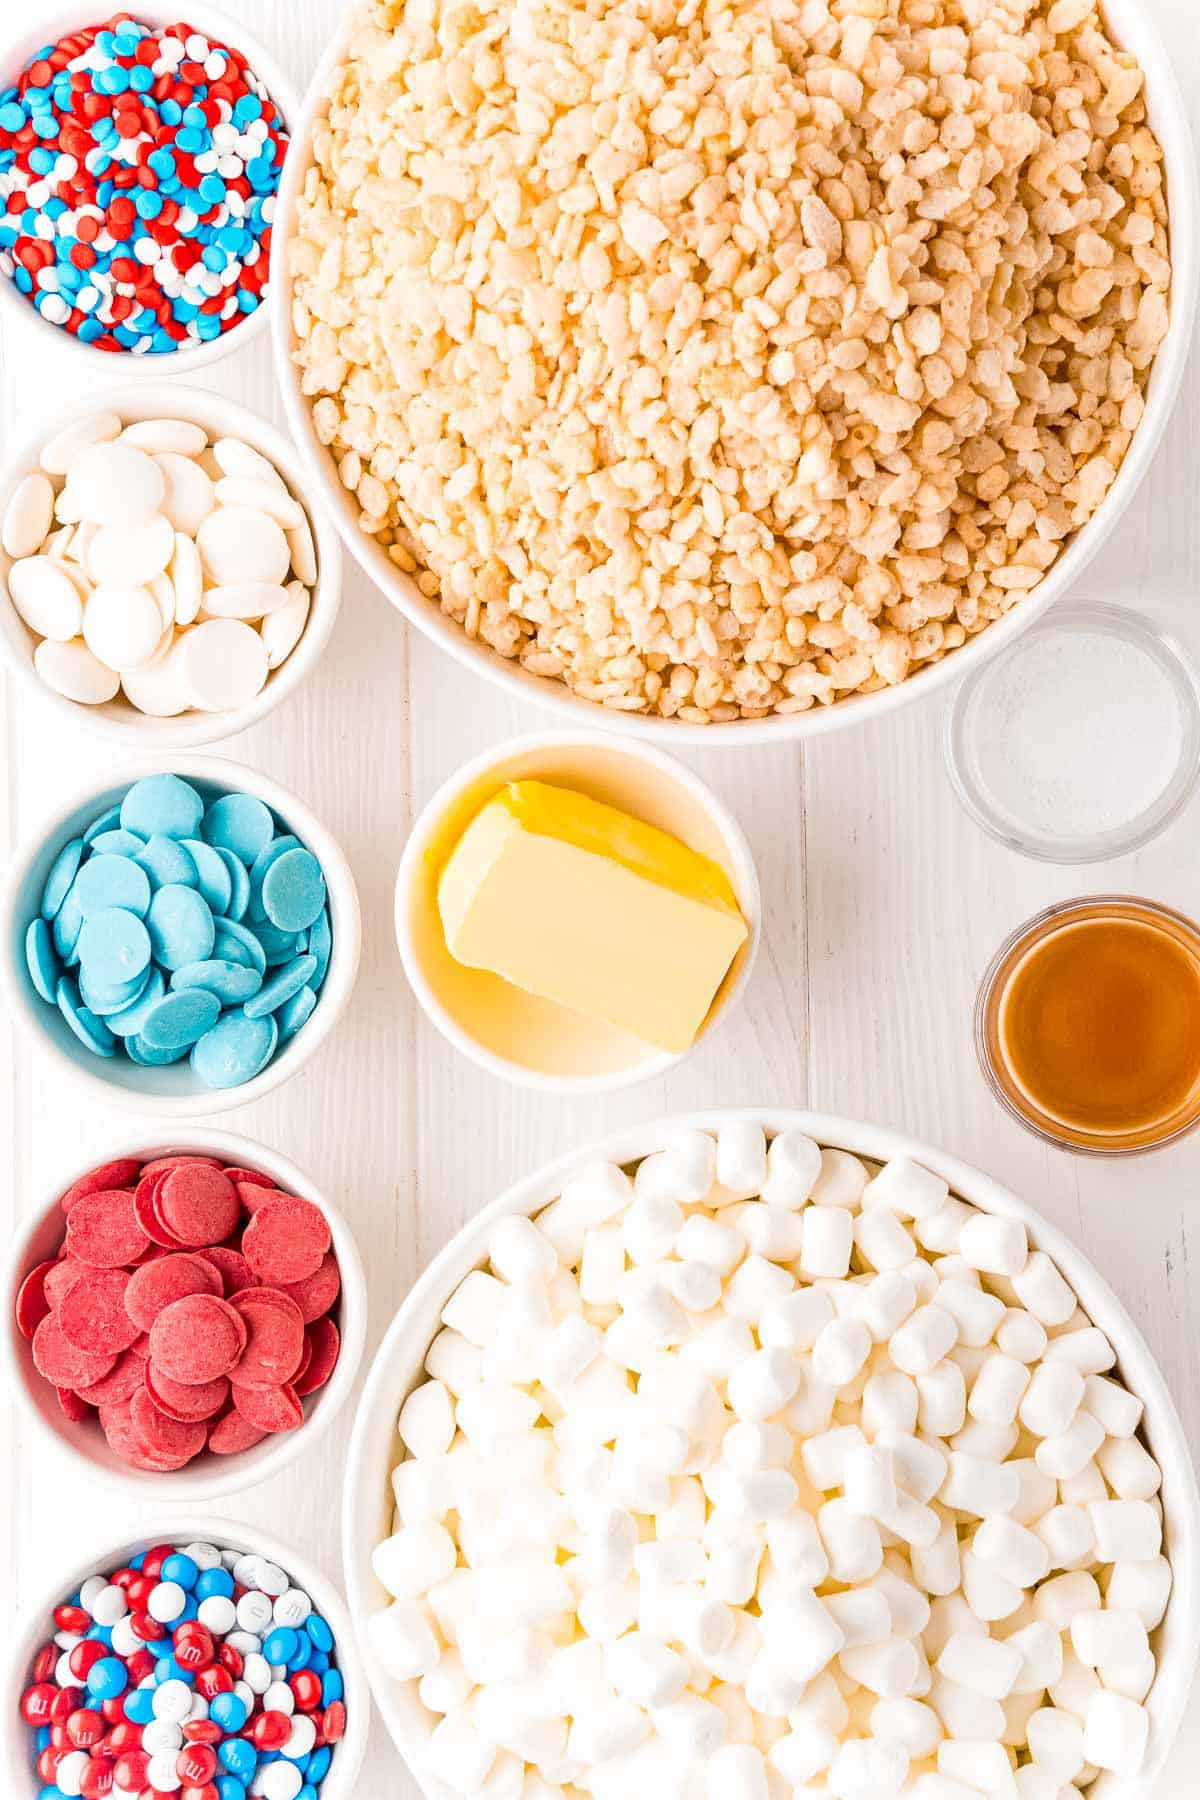 Ingredients needed for red white and blue rice krispie treats.